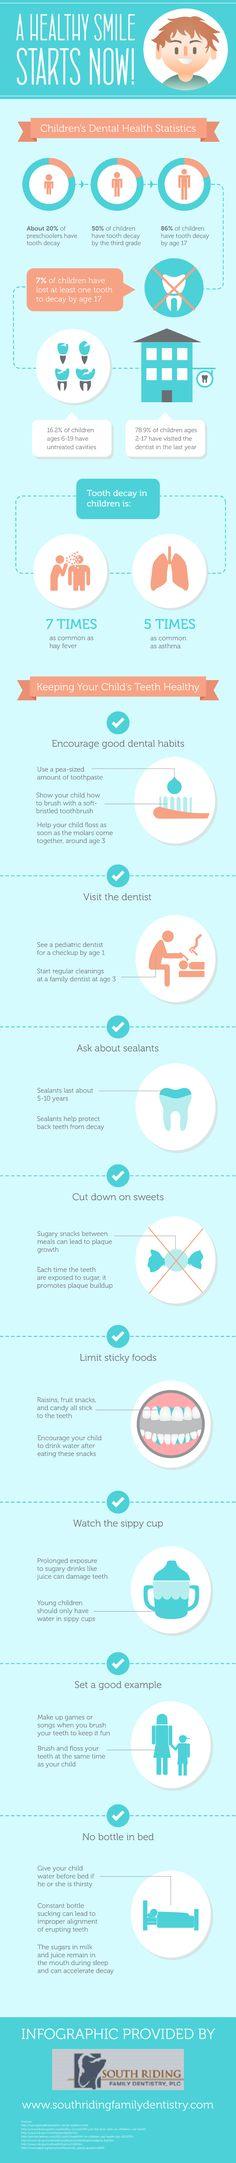 February is National Children's Dental Health Month. Teach your kids these healthy habits early, because a healthy smile starts now!